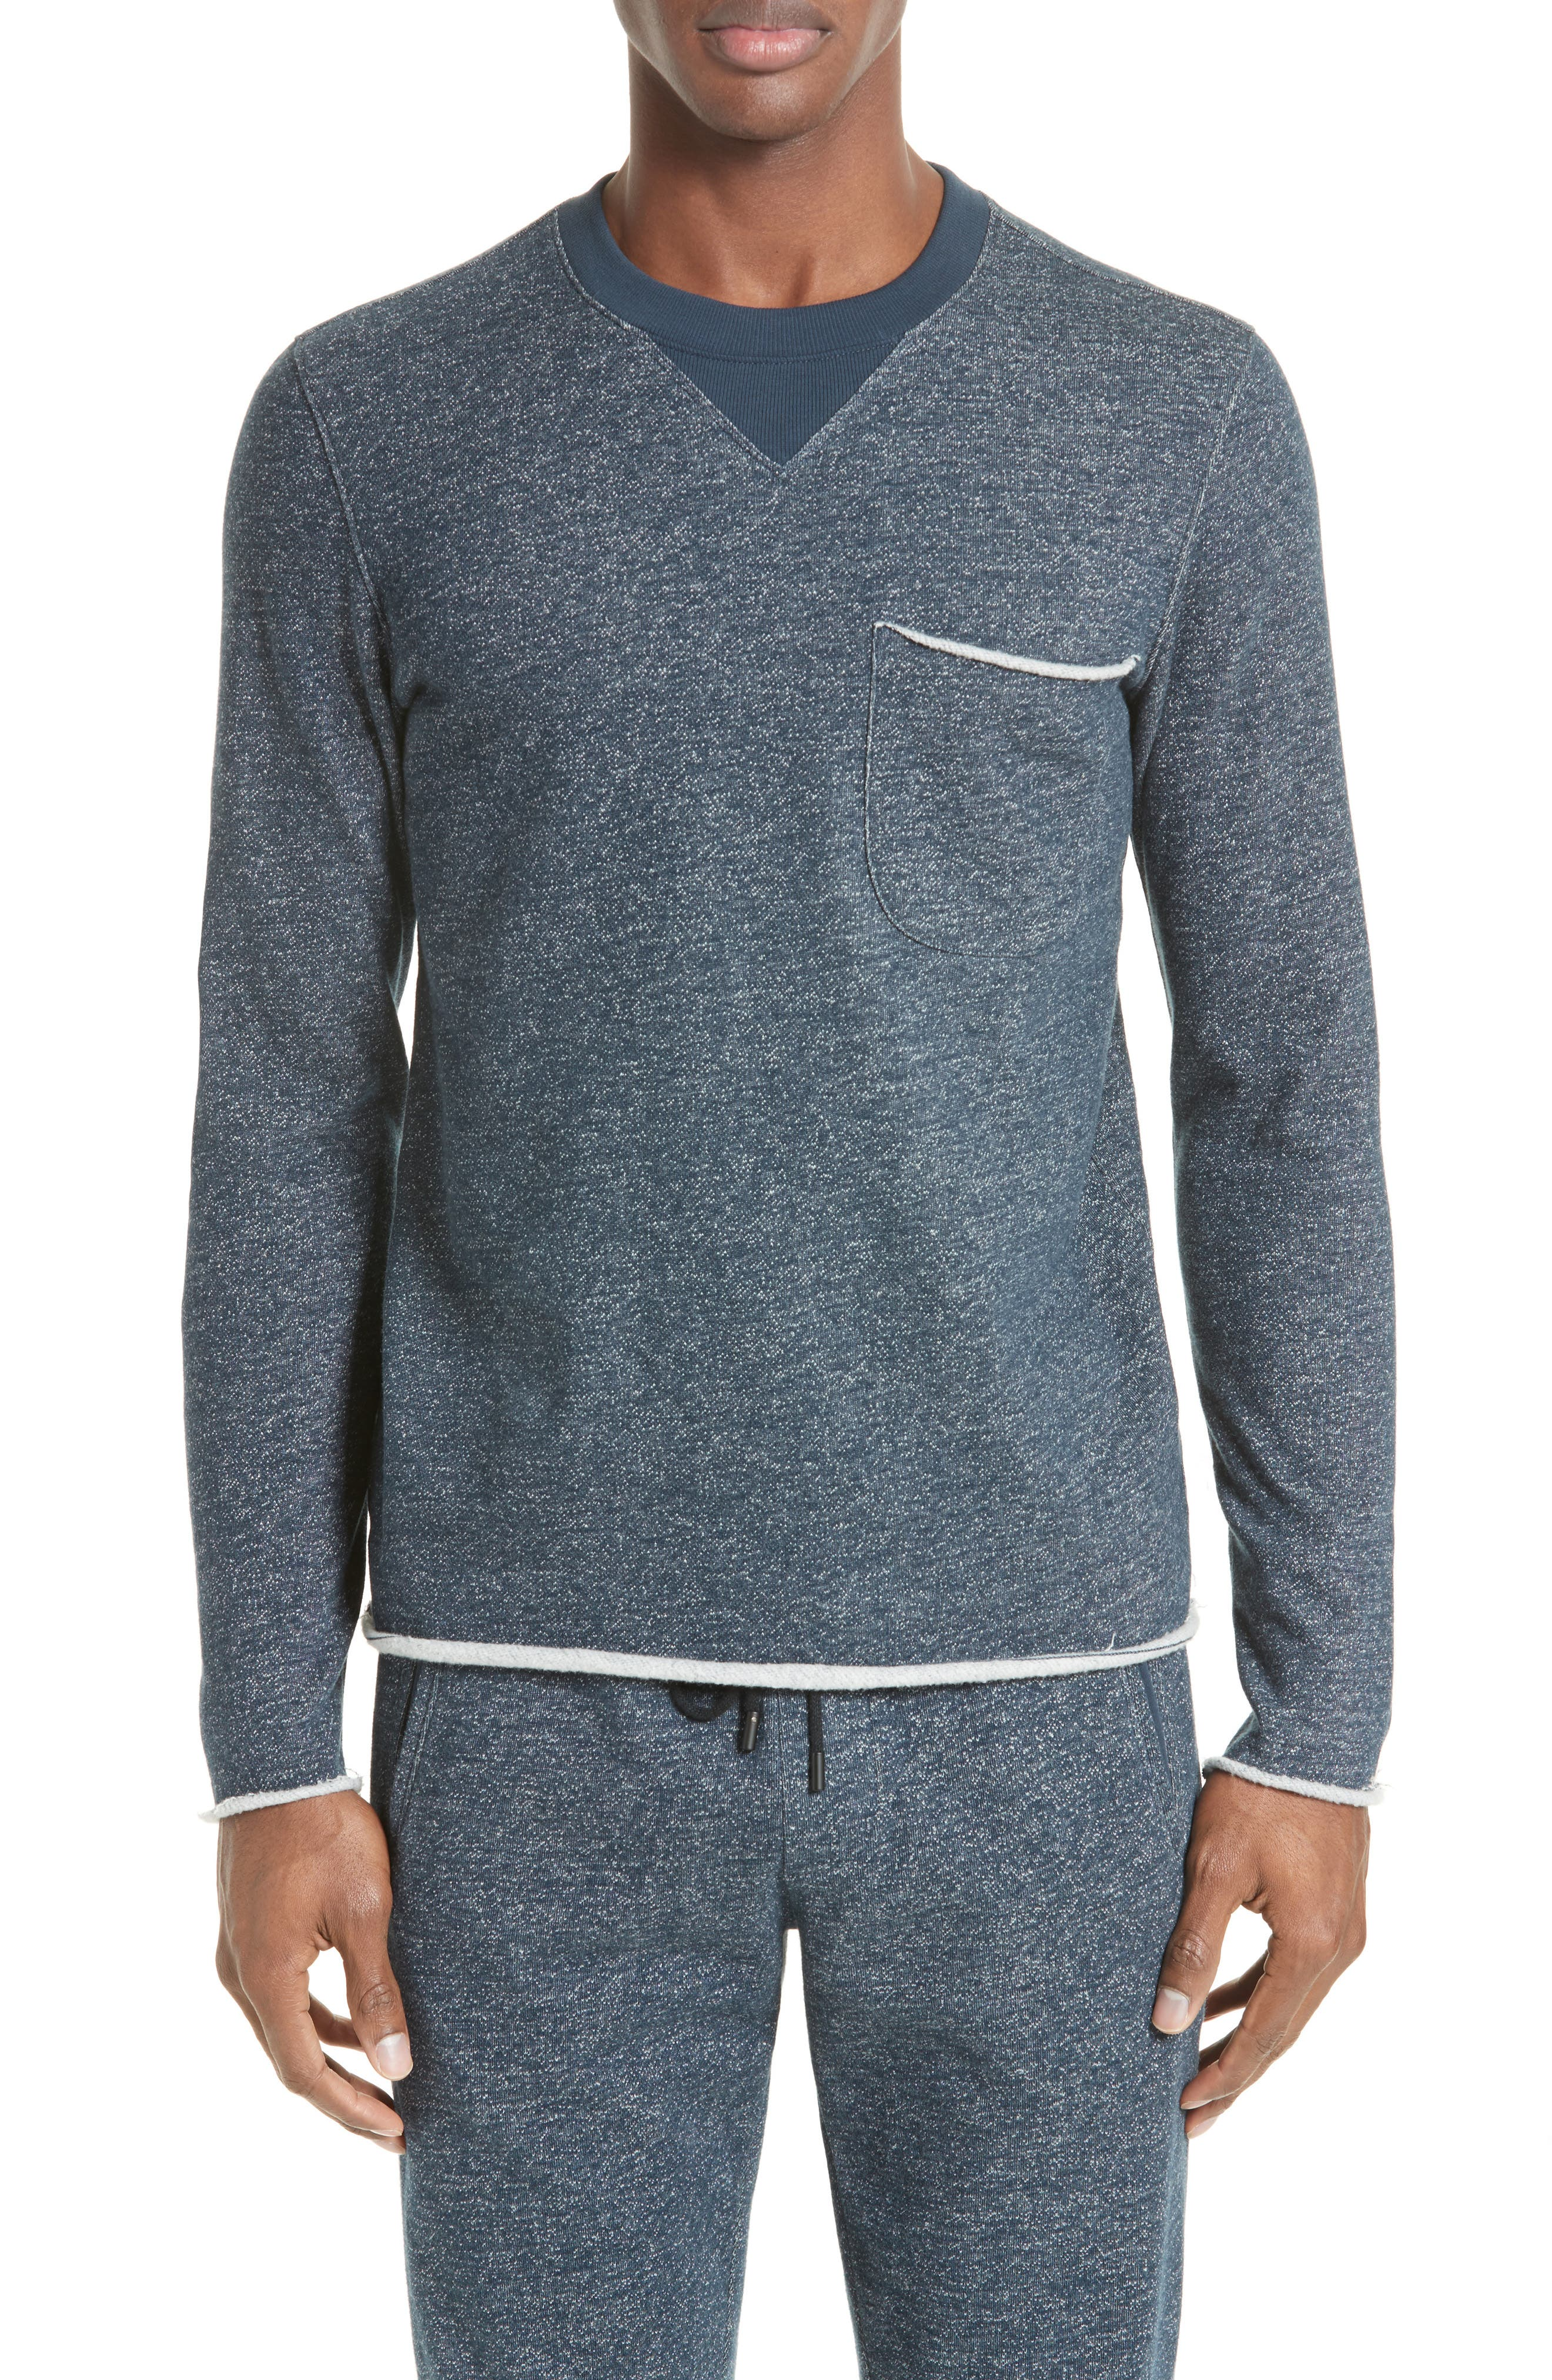 Main Image - ATM Anthony Thomas Melillo Raw Cut Terry Sweatshirt